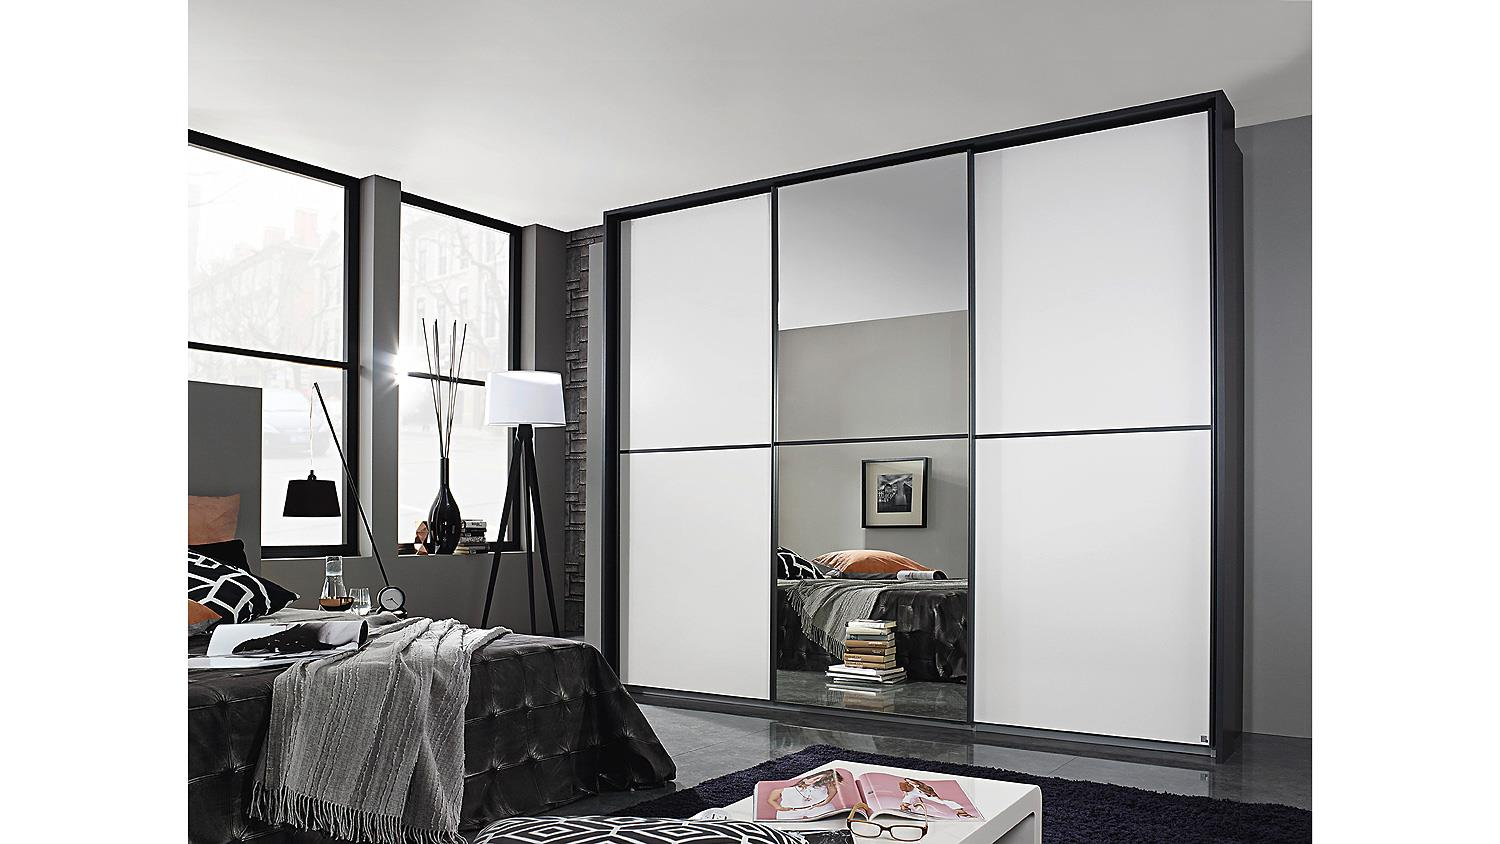 schwebet renschrank essensa schrank in grau metallic wei spiegel 271. Black Bedroom Furniture Sets. Home Design Ideas